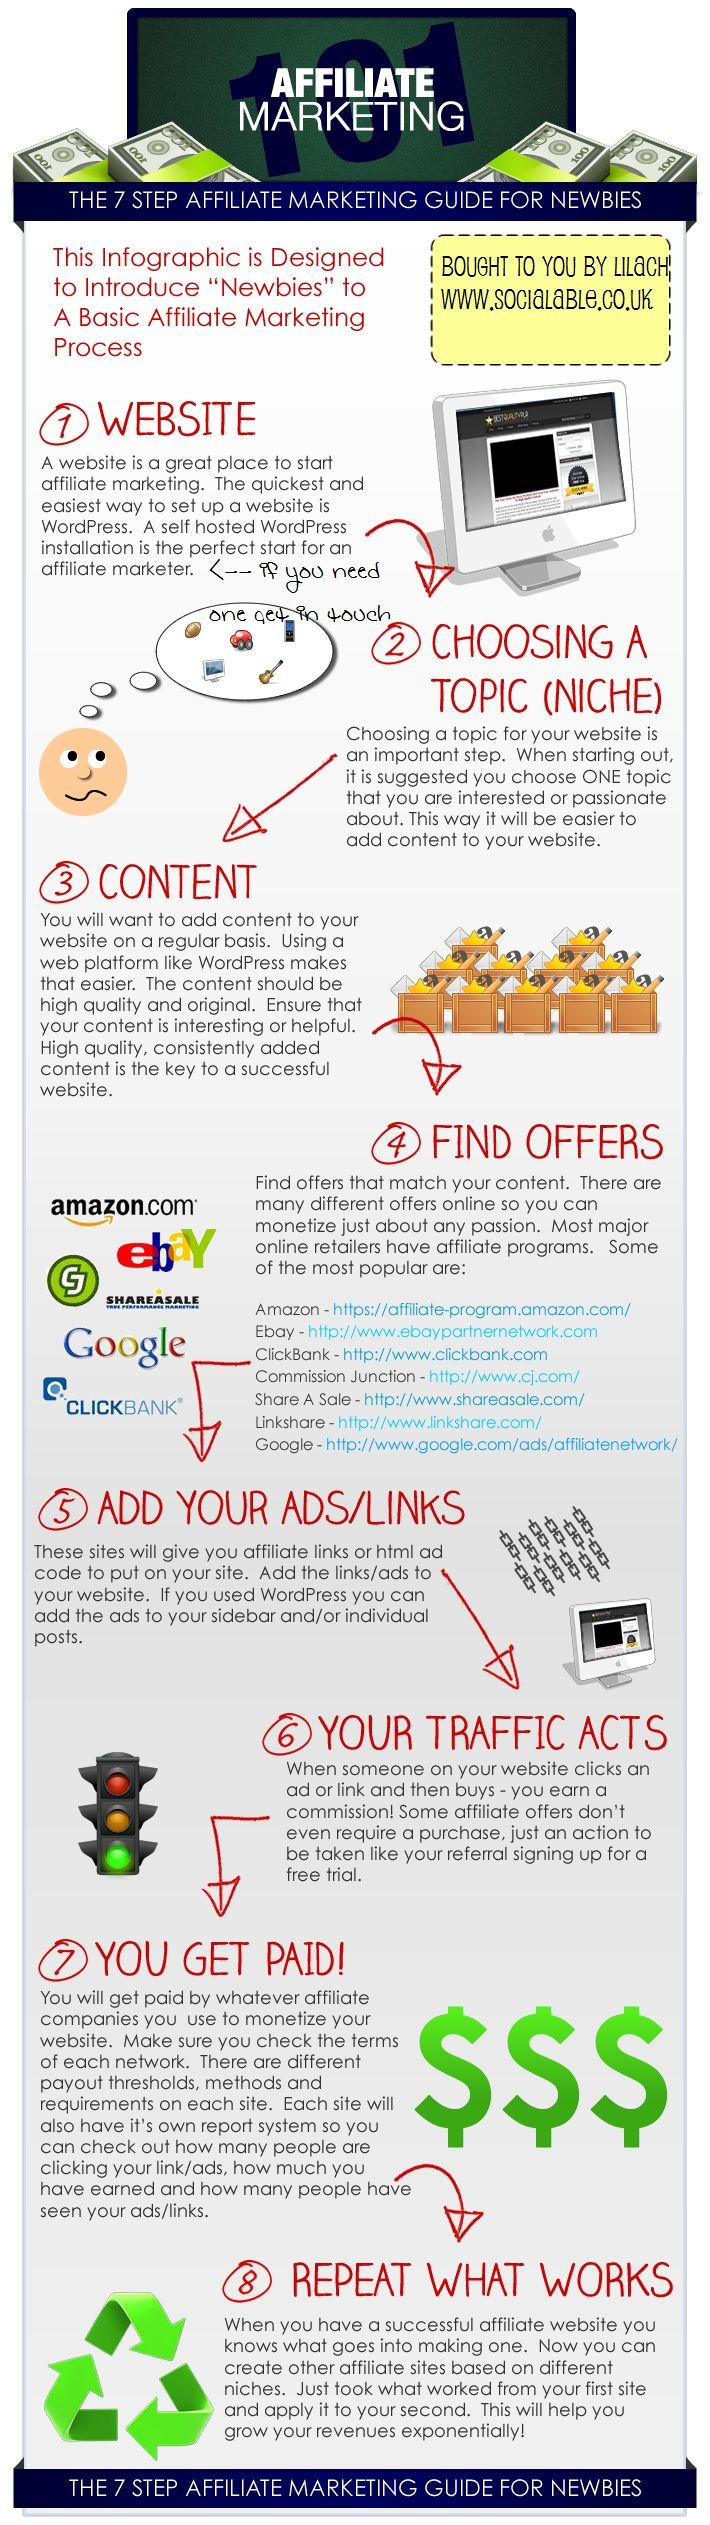 Infografik Affiliate Marketing | 8 Tipps für erfolgreiches Affiliate Marketing | 8 steps to successful Affiliate-Marketing